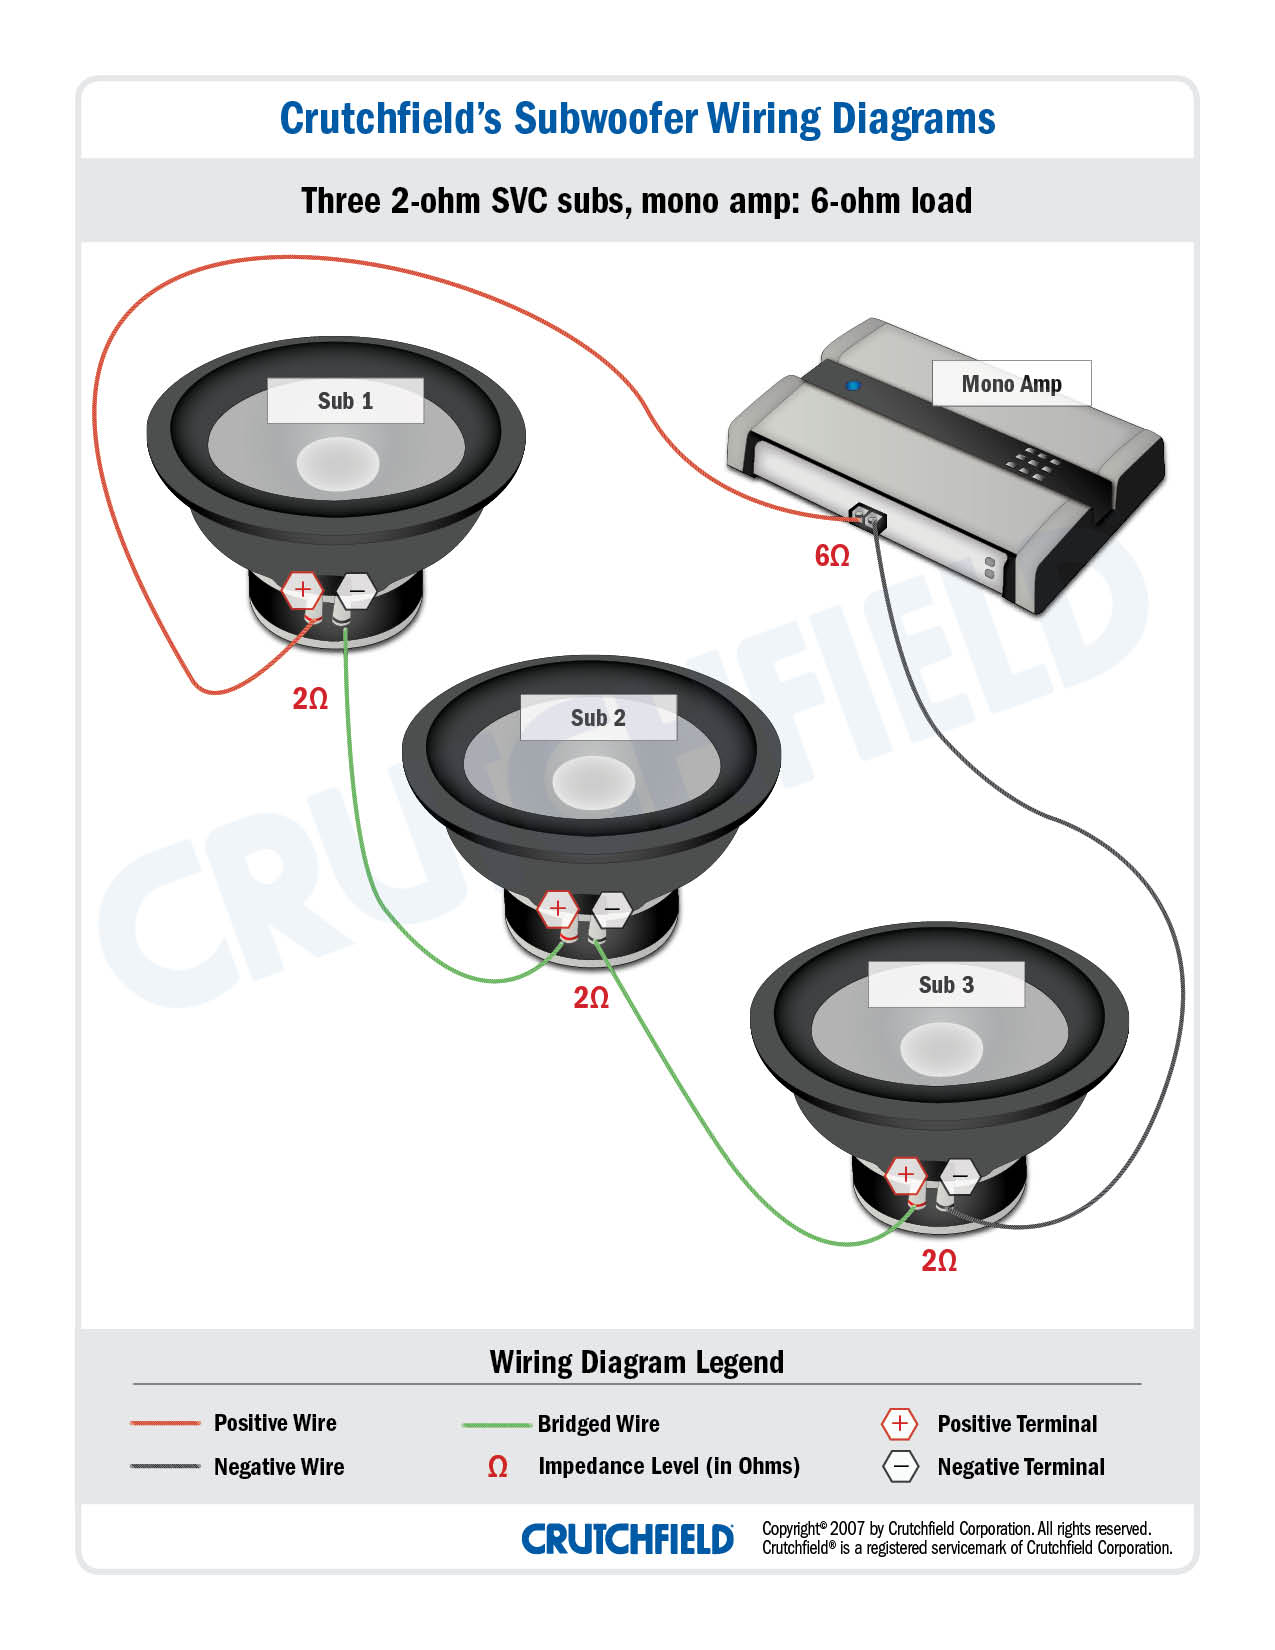 3 SVC 2 ohm mono subwoofer wiring diagrams 5 channel amp wiring diagram at webbmarketing.co